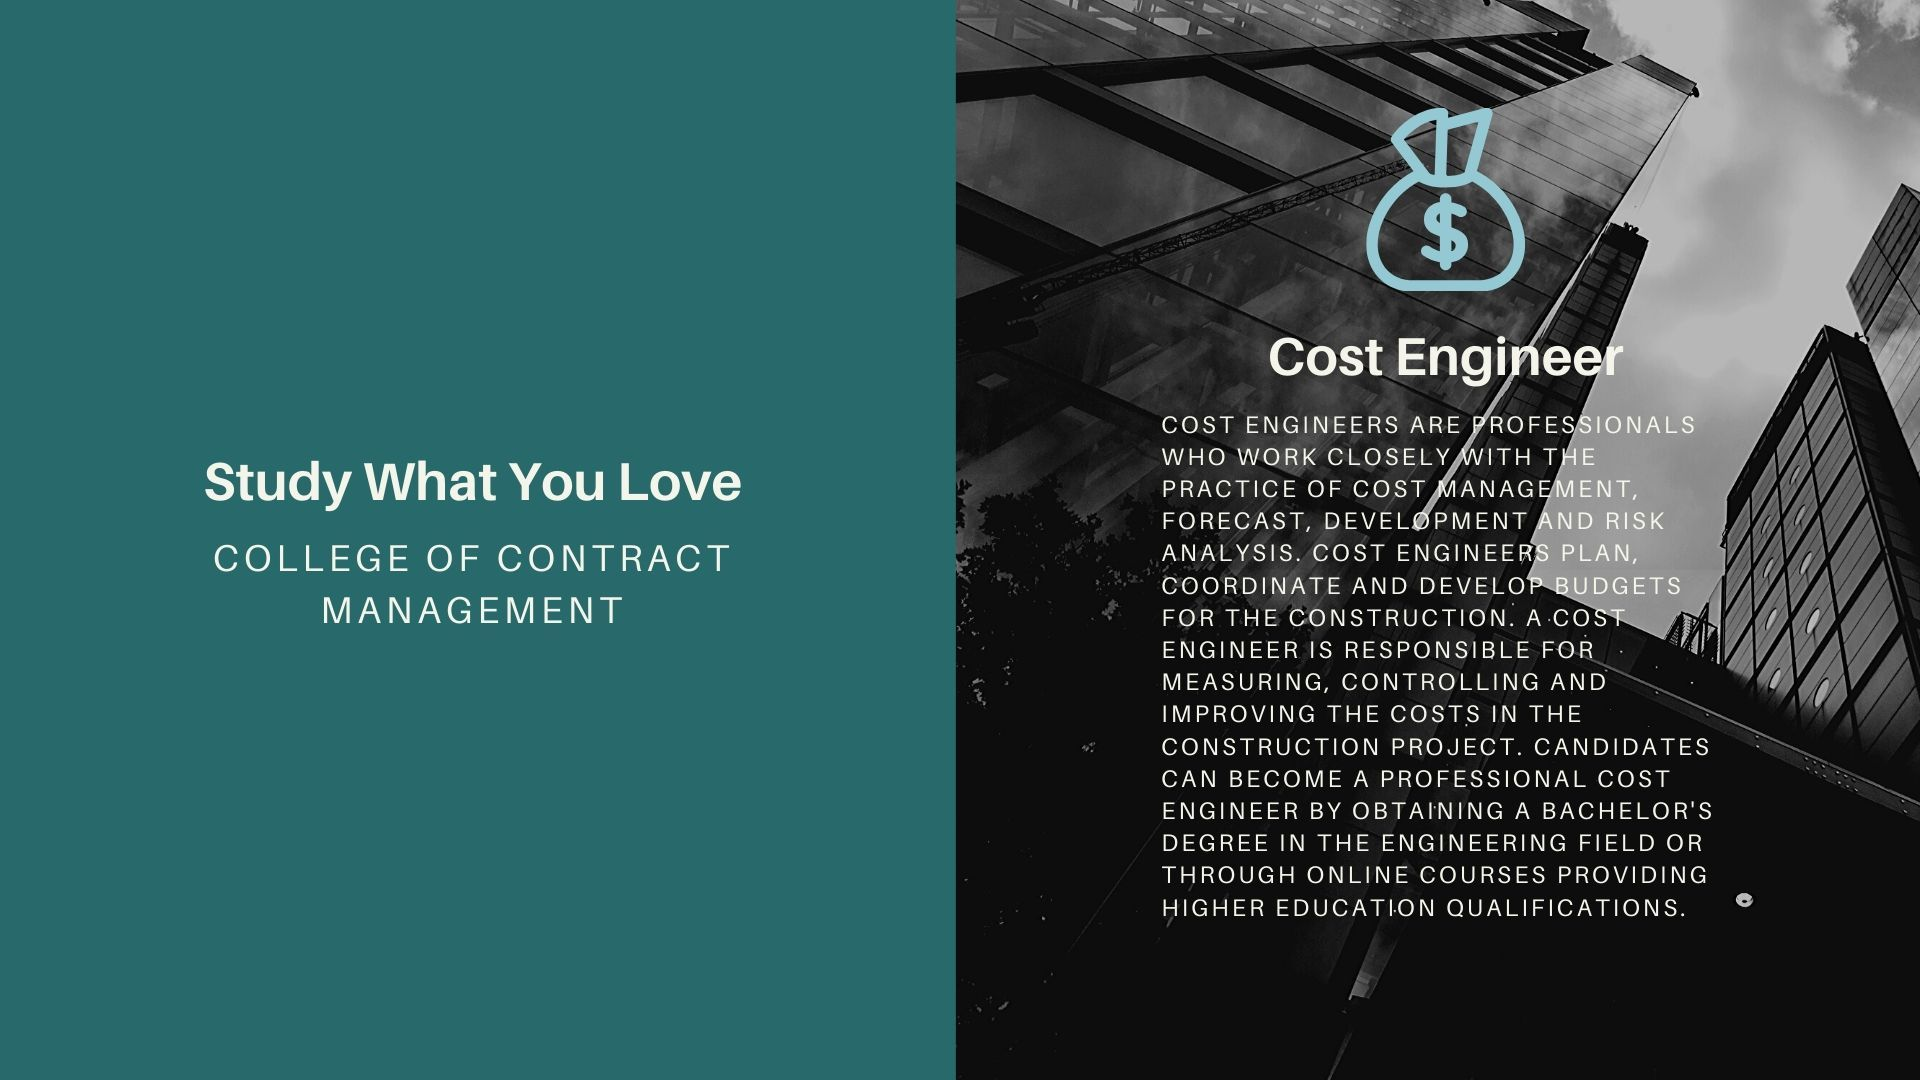 Cost Engineer In 2020 Contract Management Engineering Colleges Online Courses